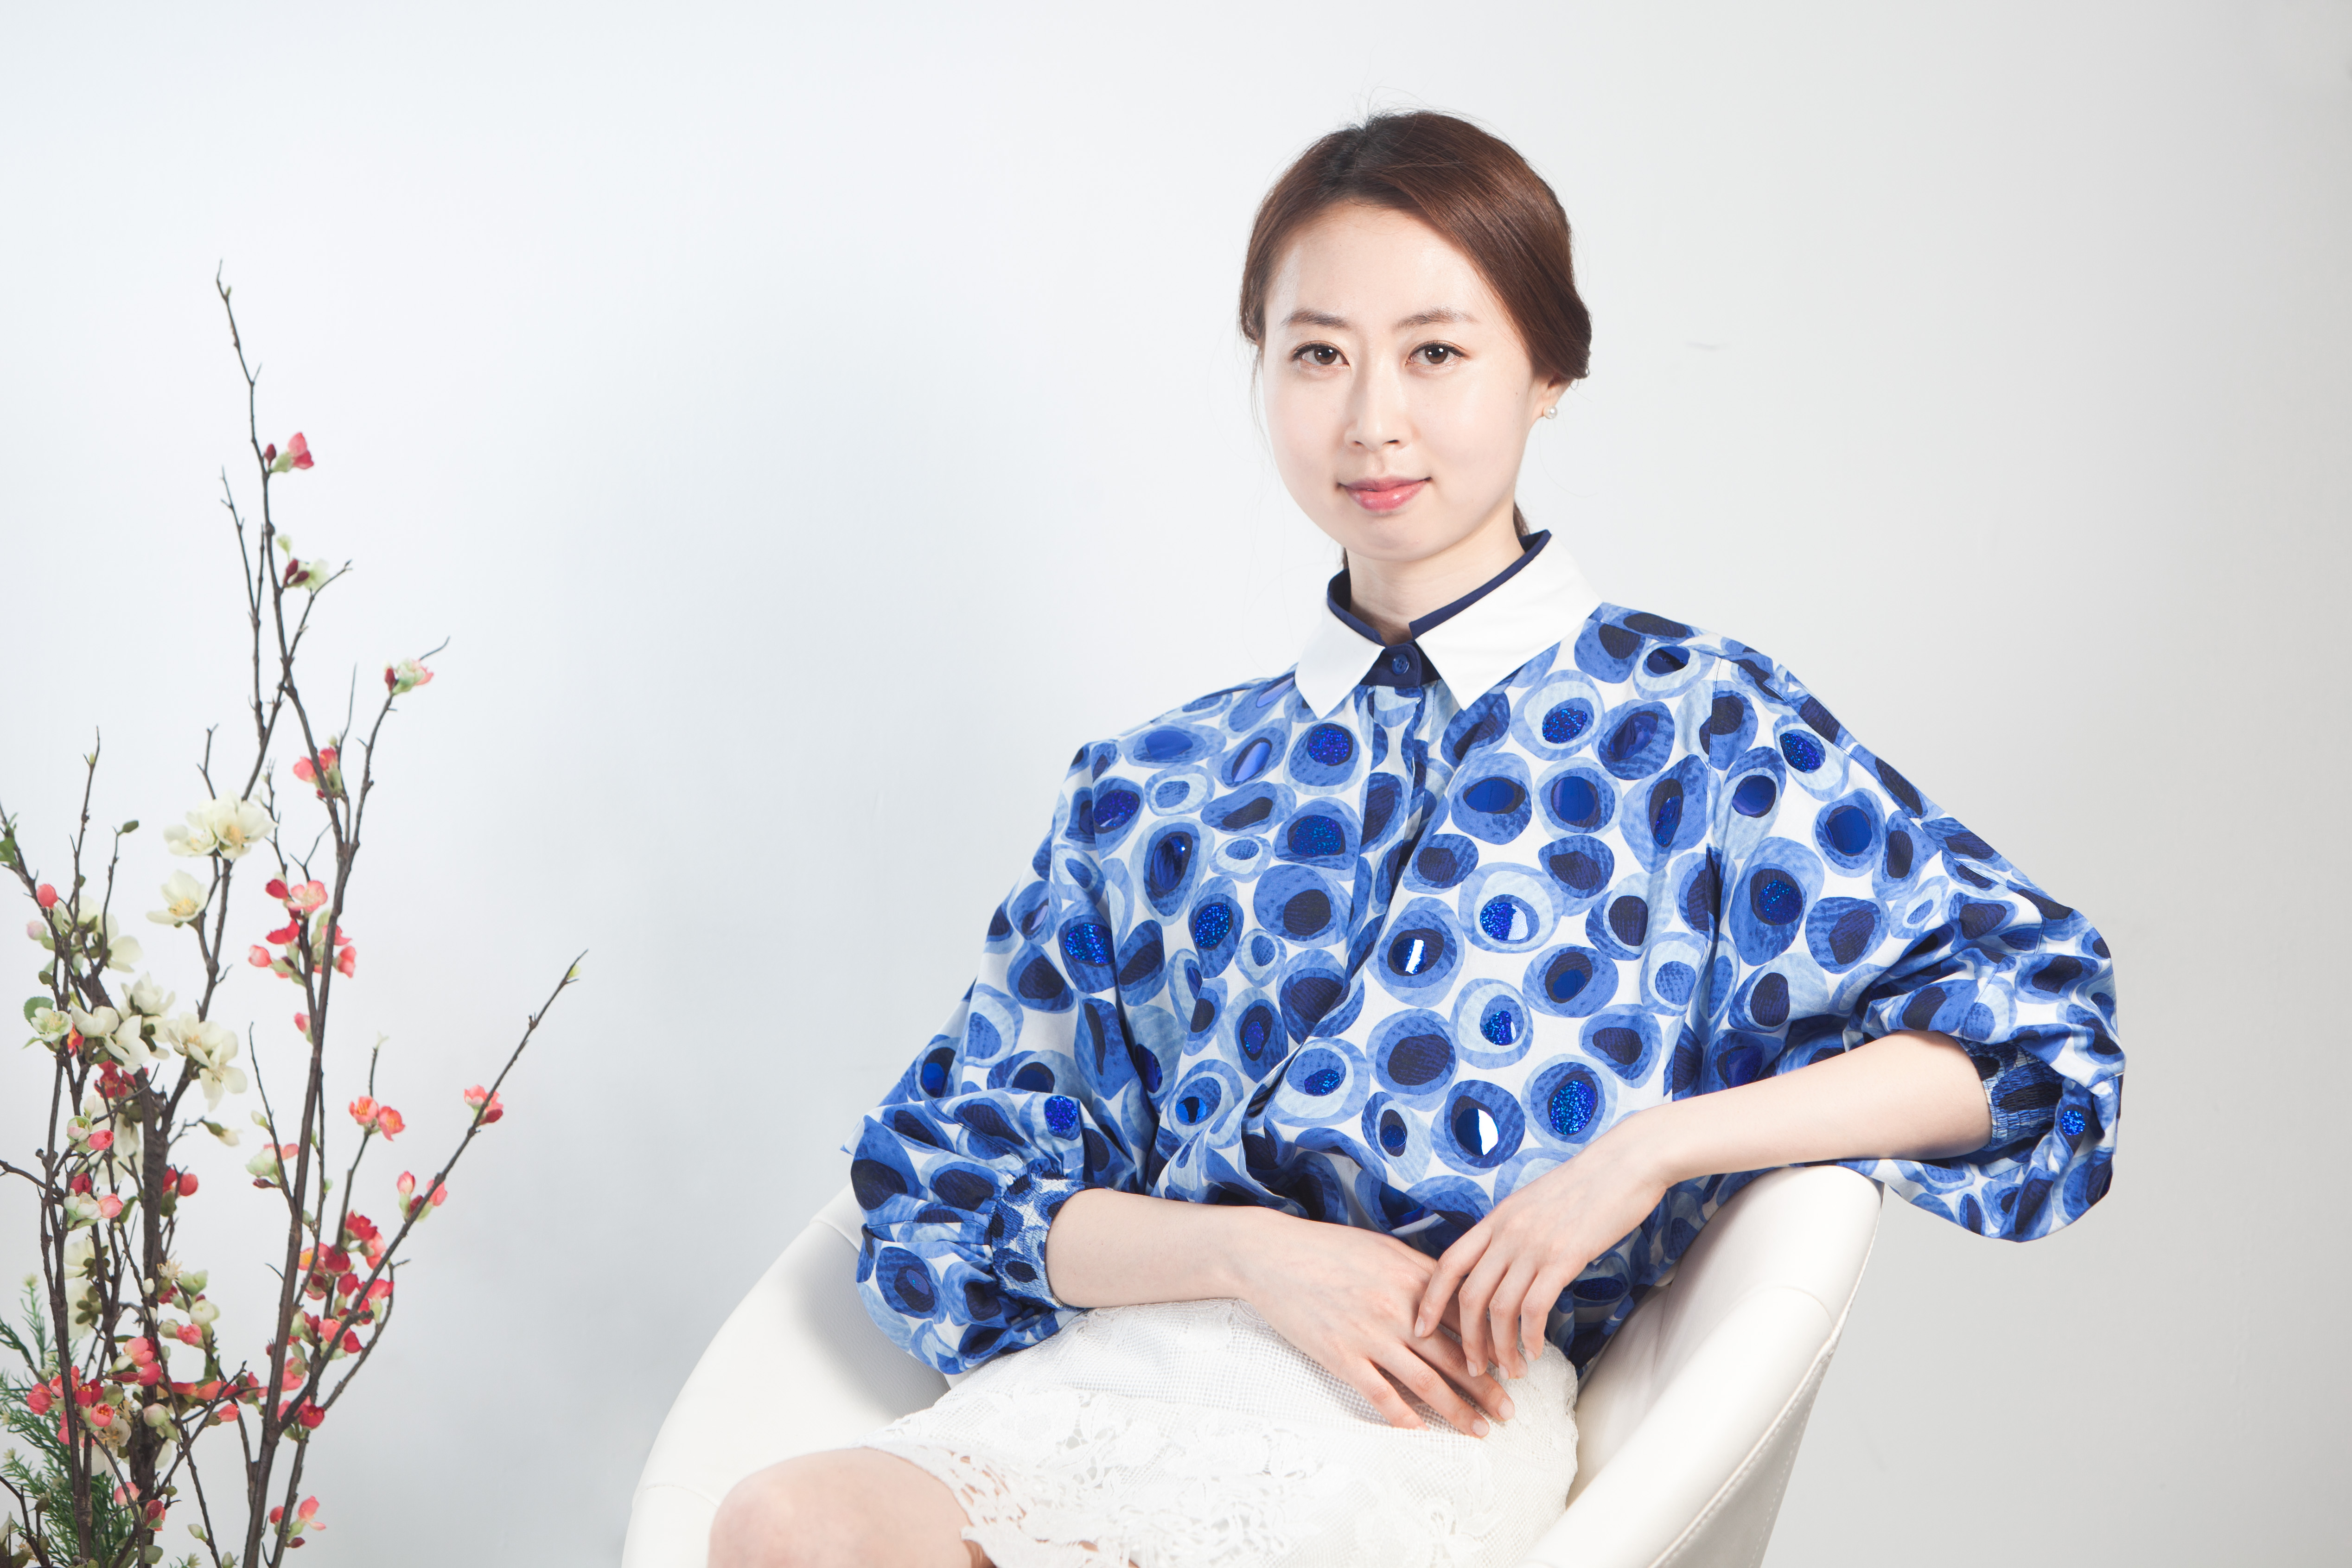 How This Korean Entertainment Host Is Changing the Way We View Celebrities